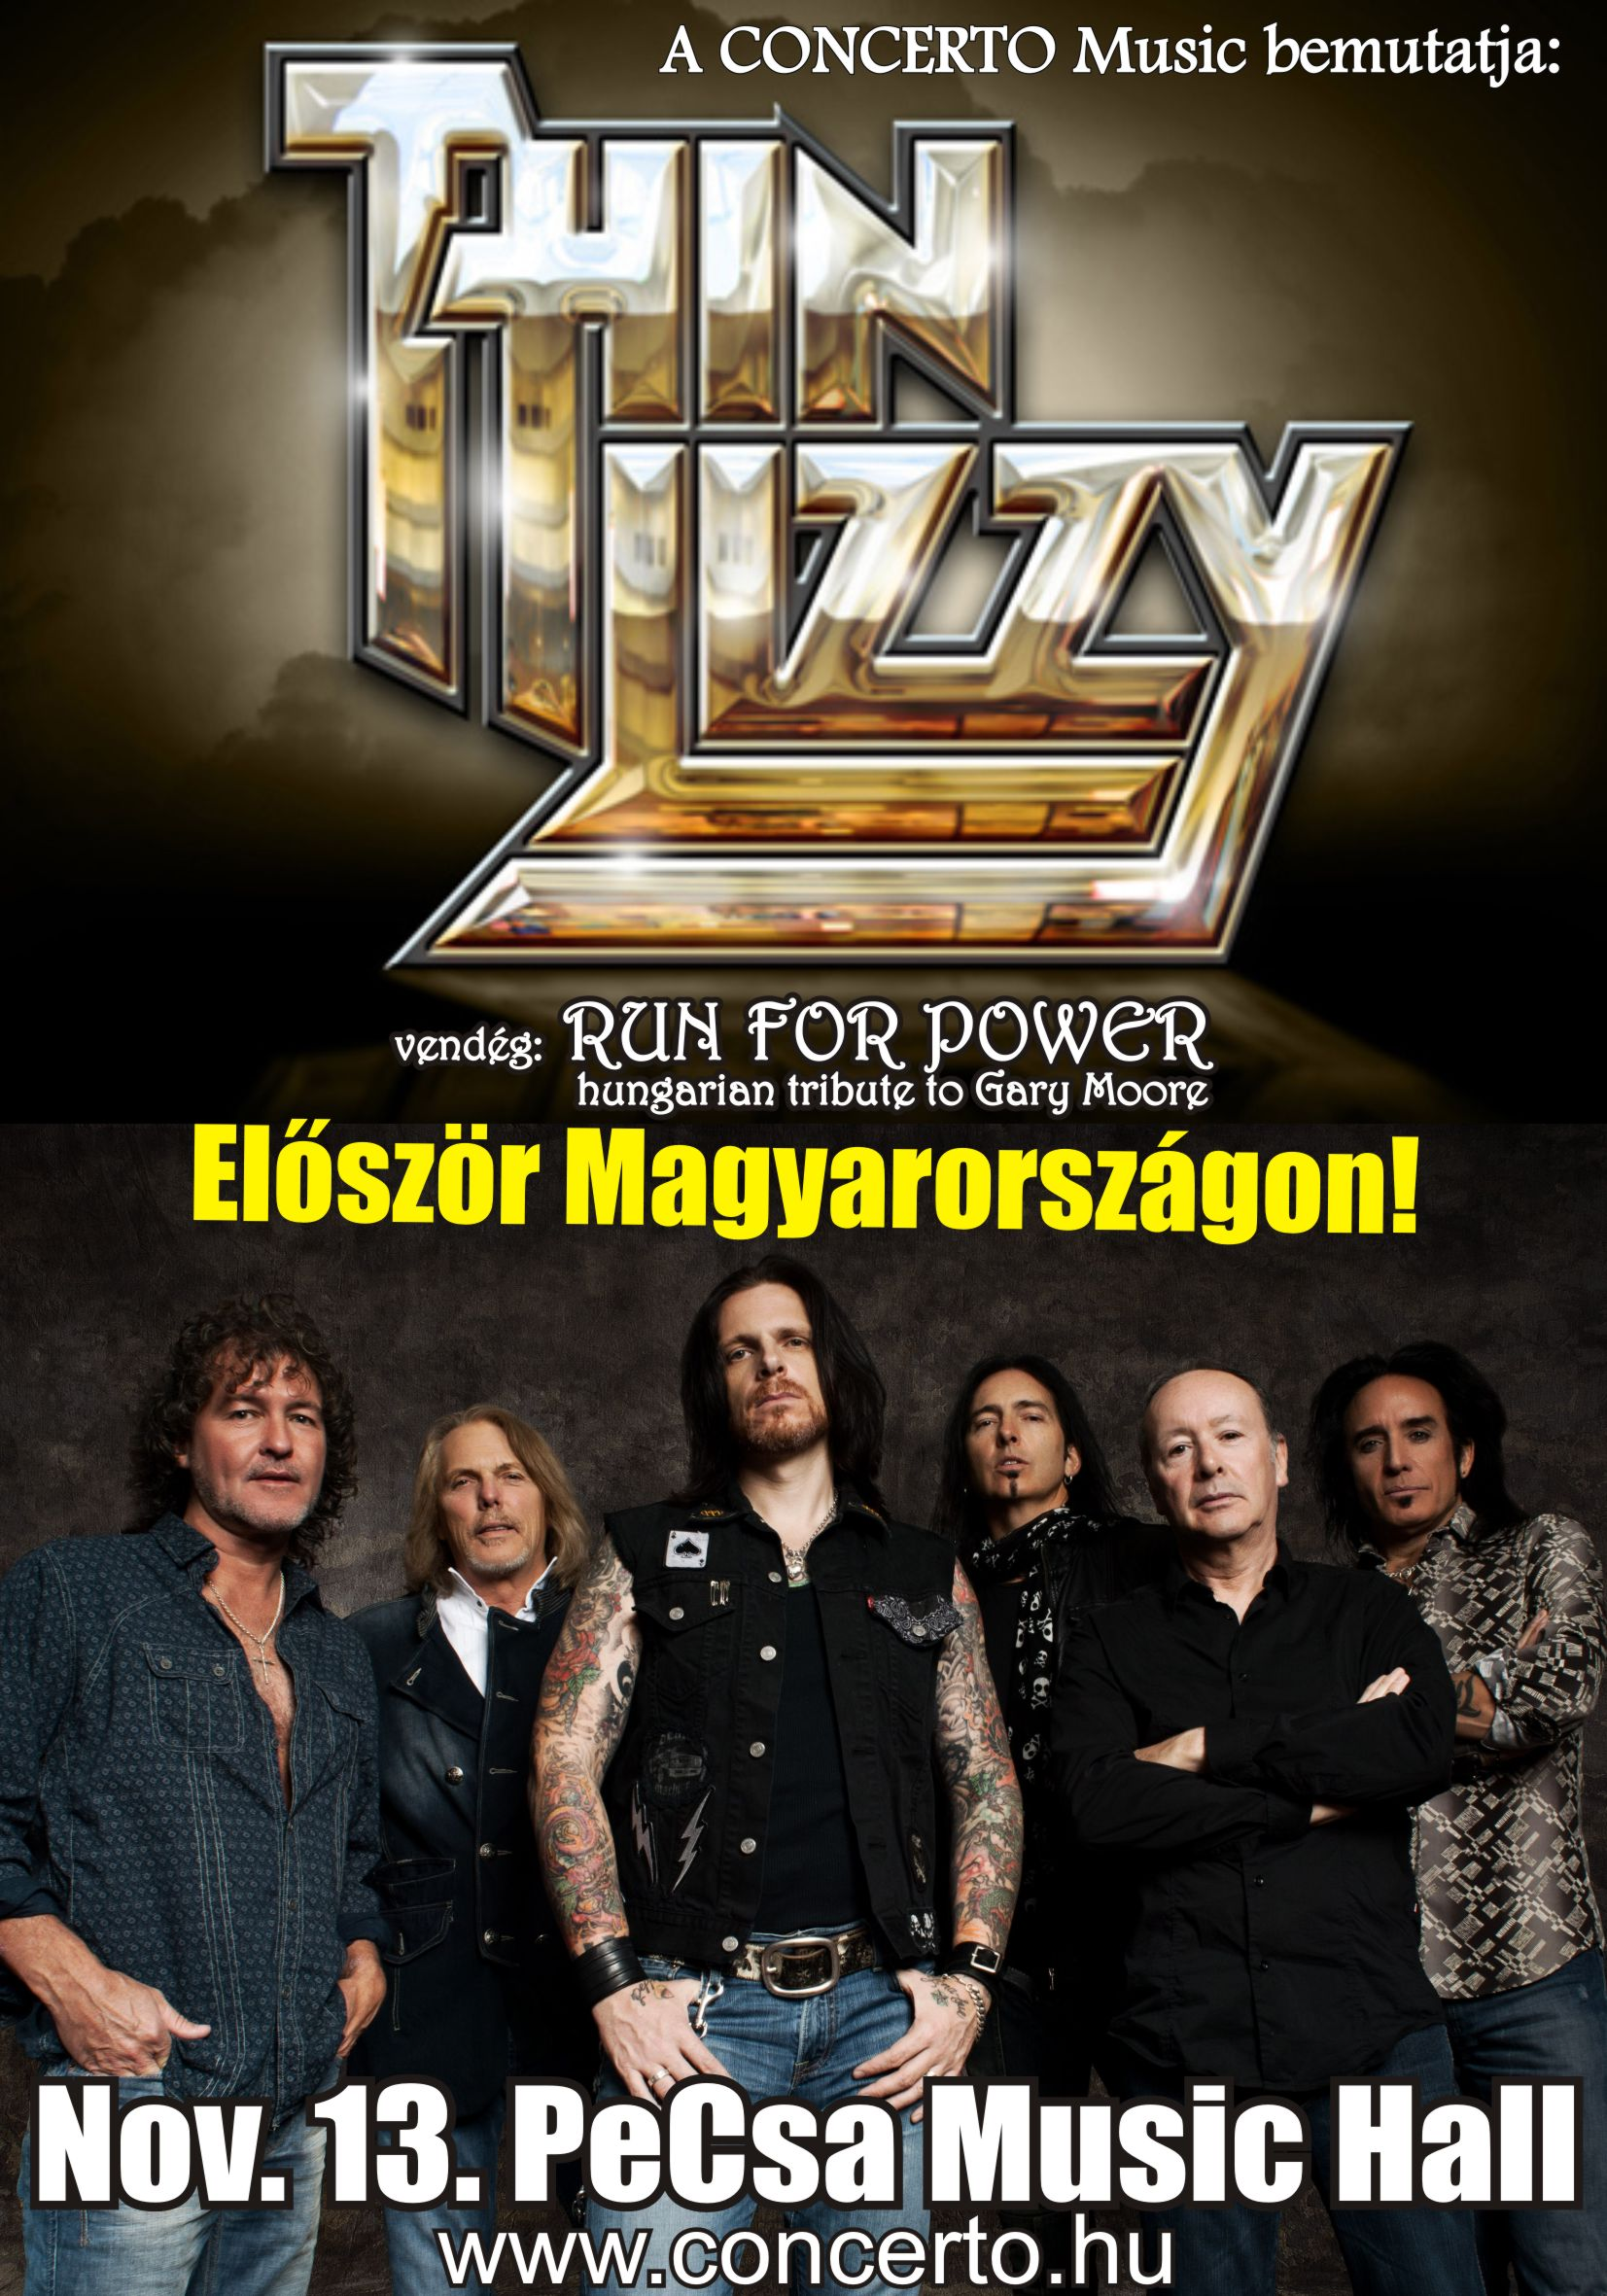 Flyer Thin Lizzy2.jpg